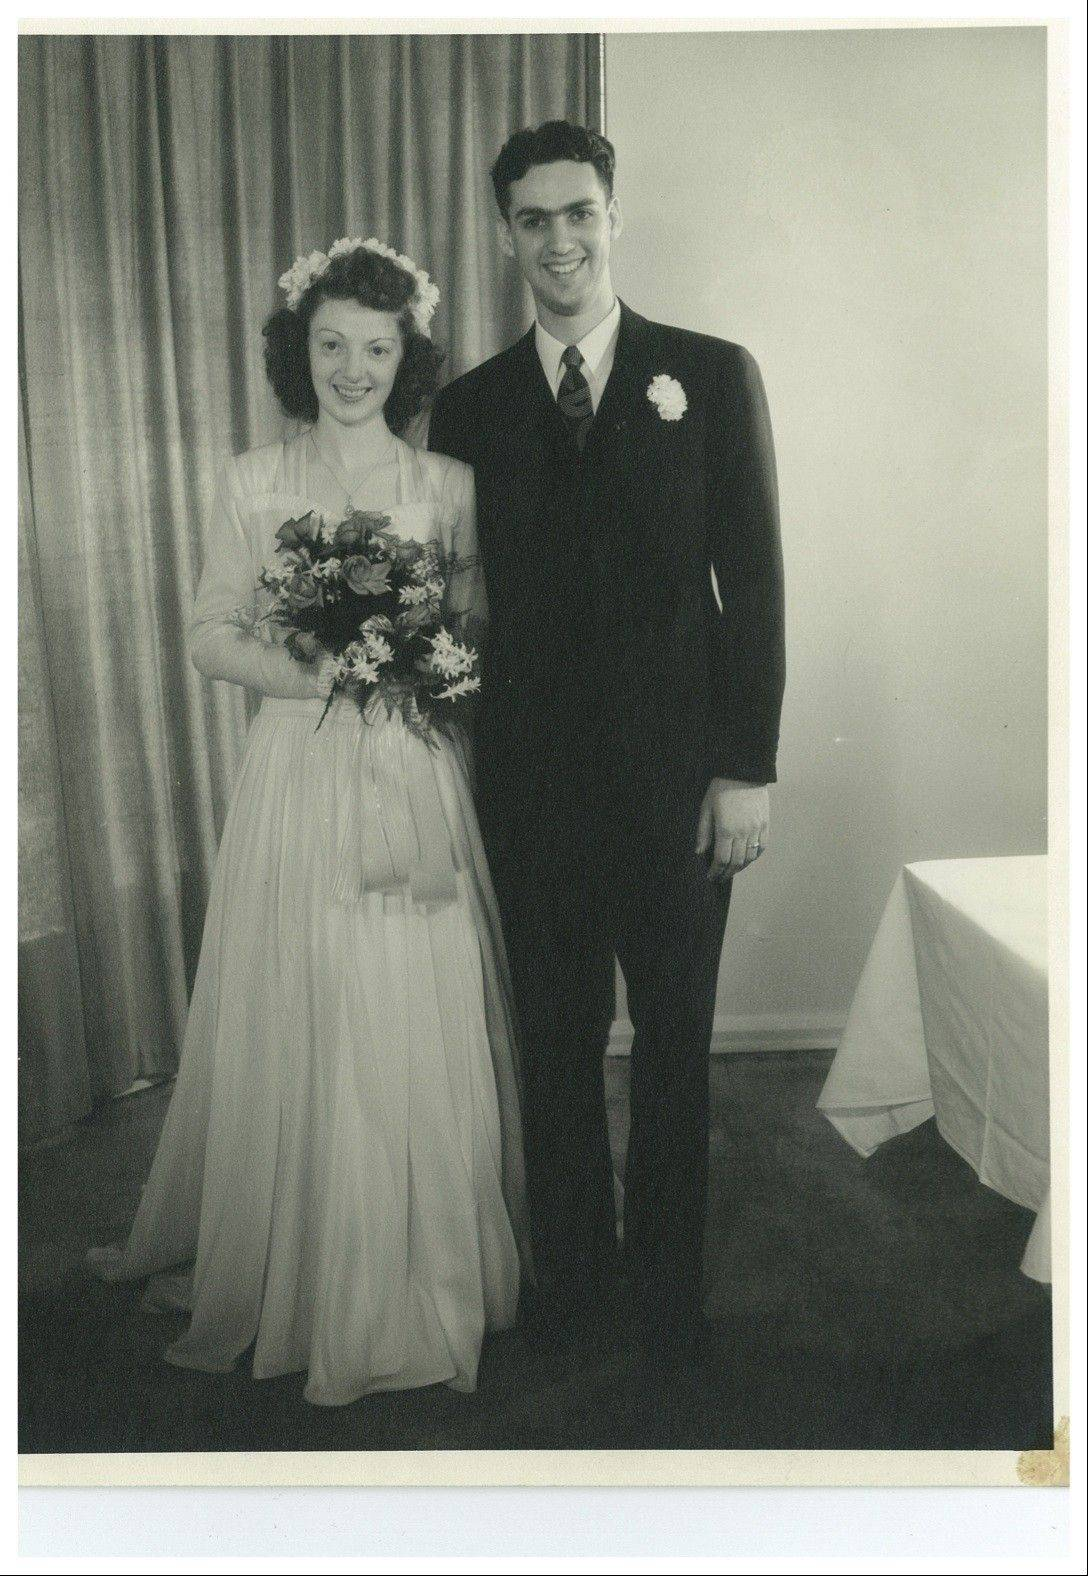 Cay and Gene Voiland are shown on their wedding day, Feb. 19, 1946. Cay wore a dress made of silk from Gene's Air Force parachute. The Voilands just celebrated their 66th wedding anniversary and reside in The Holmstad, a retirement community in Batavia.